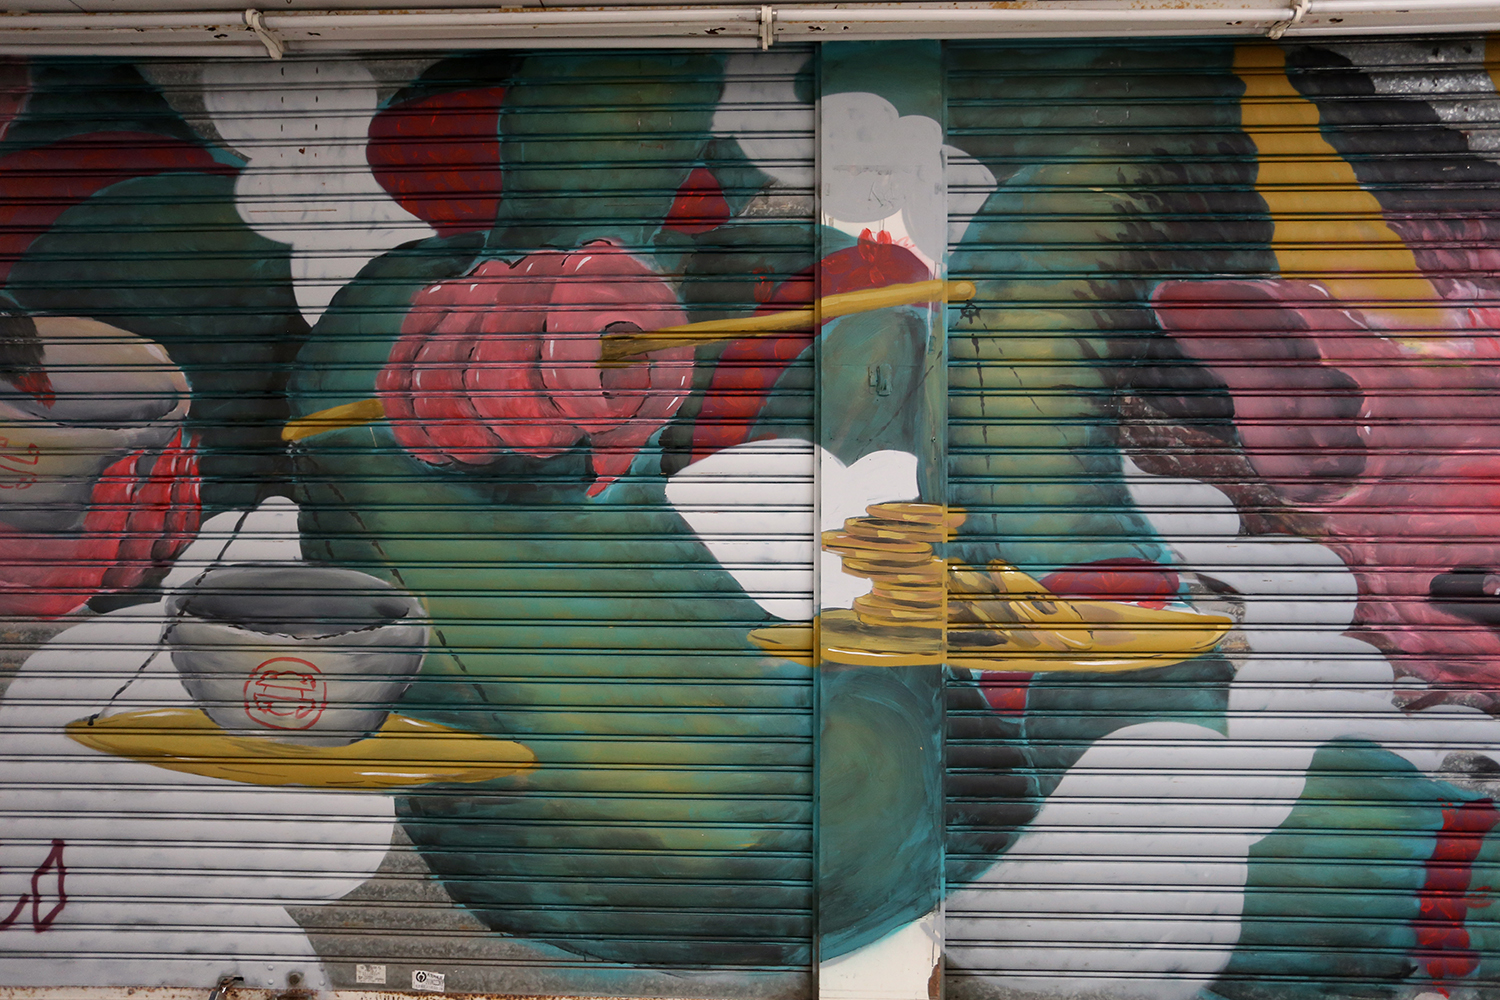 barlo-new-shutter-at-stanley-market-hong-kong-06